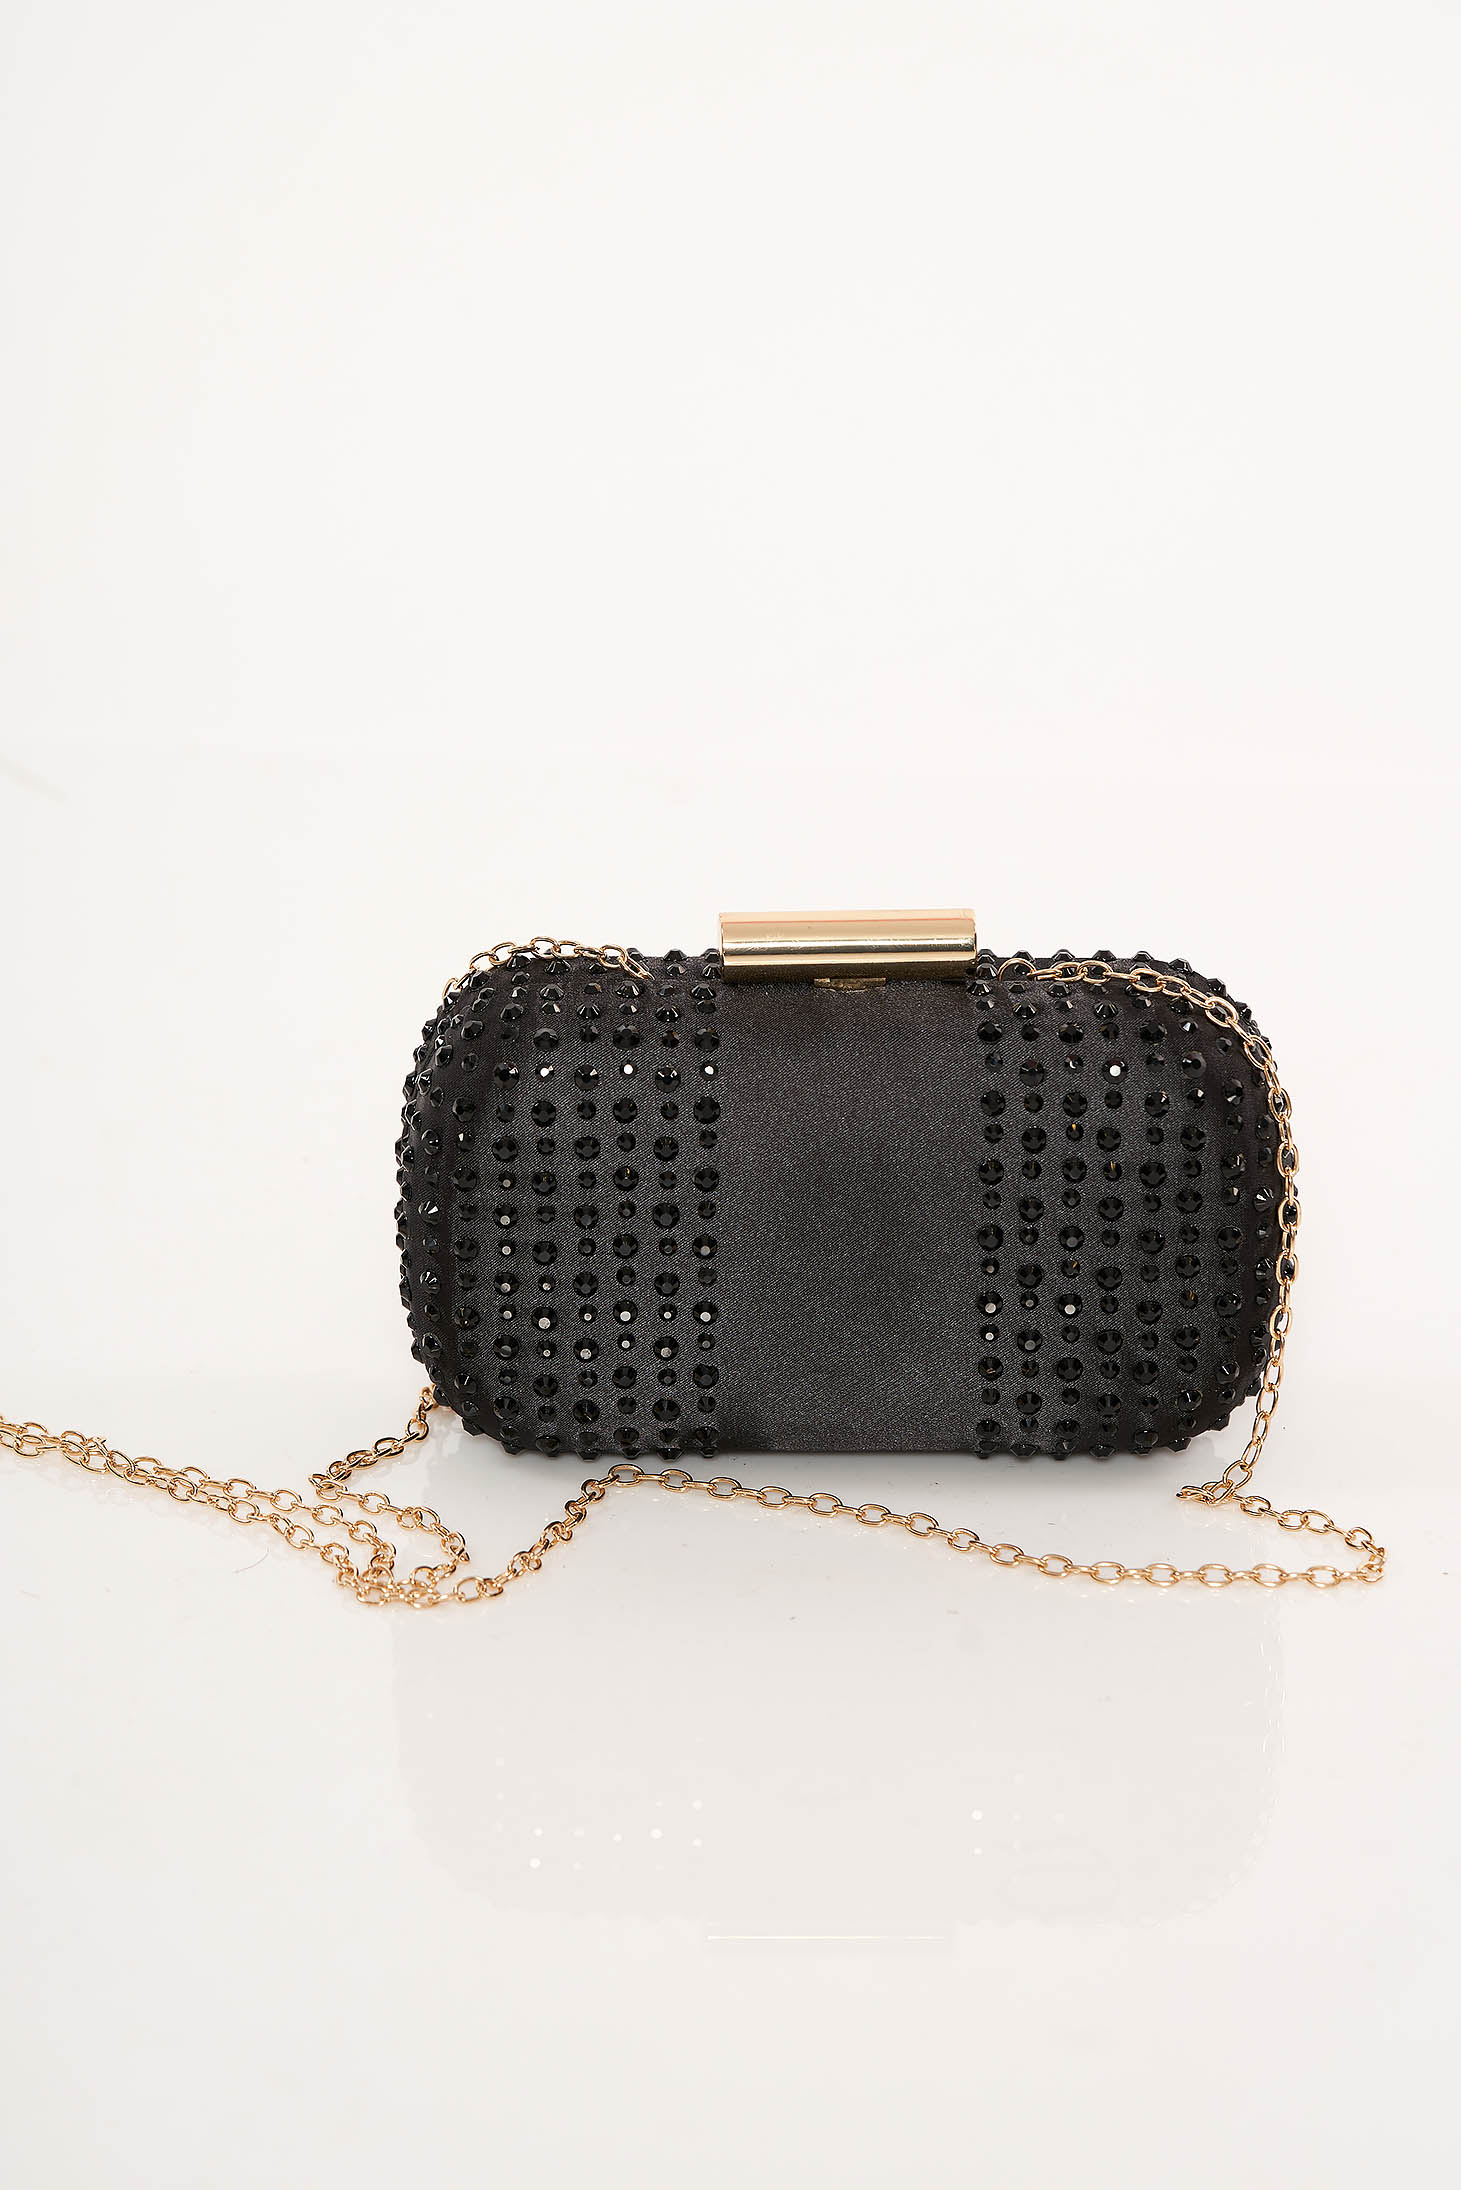 Top Secret black bag clubbing clutch with crystal embellished details